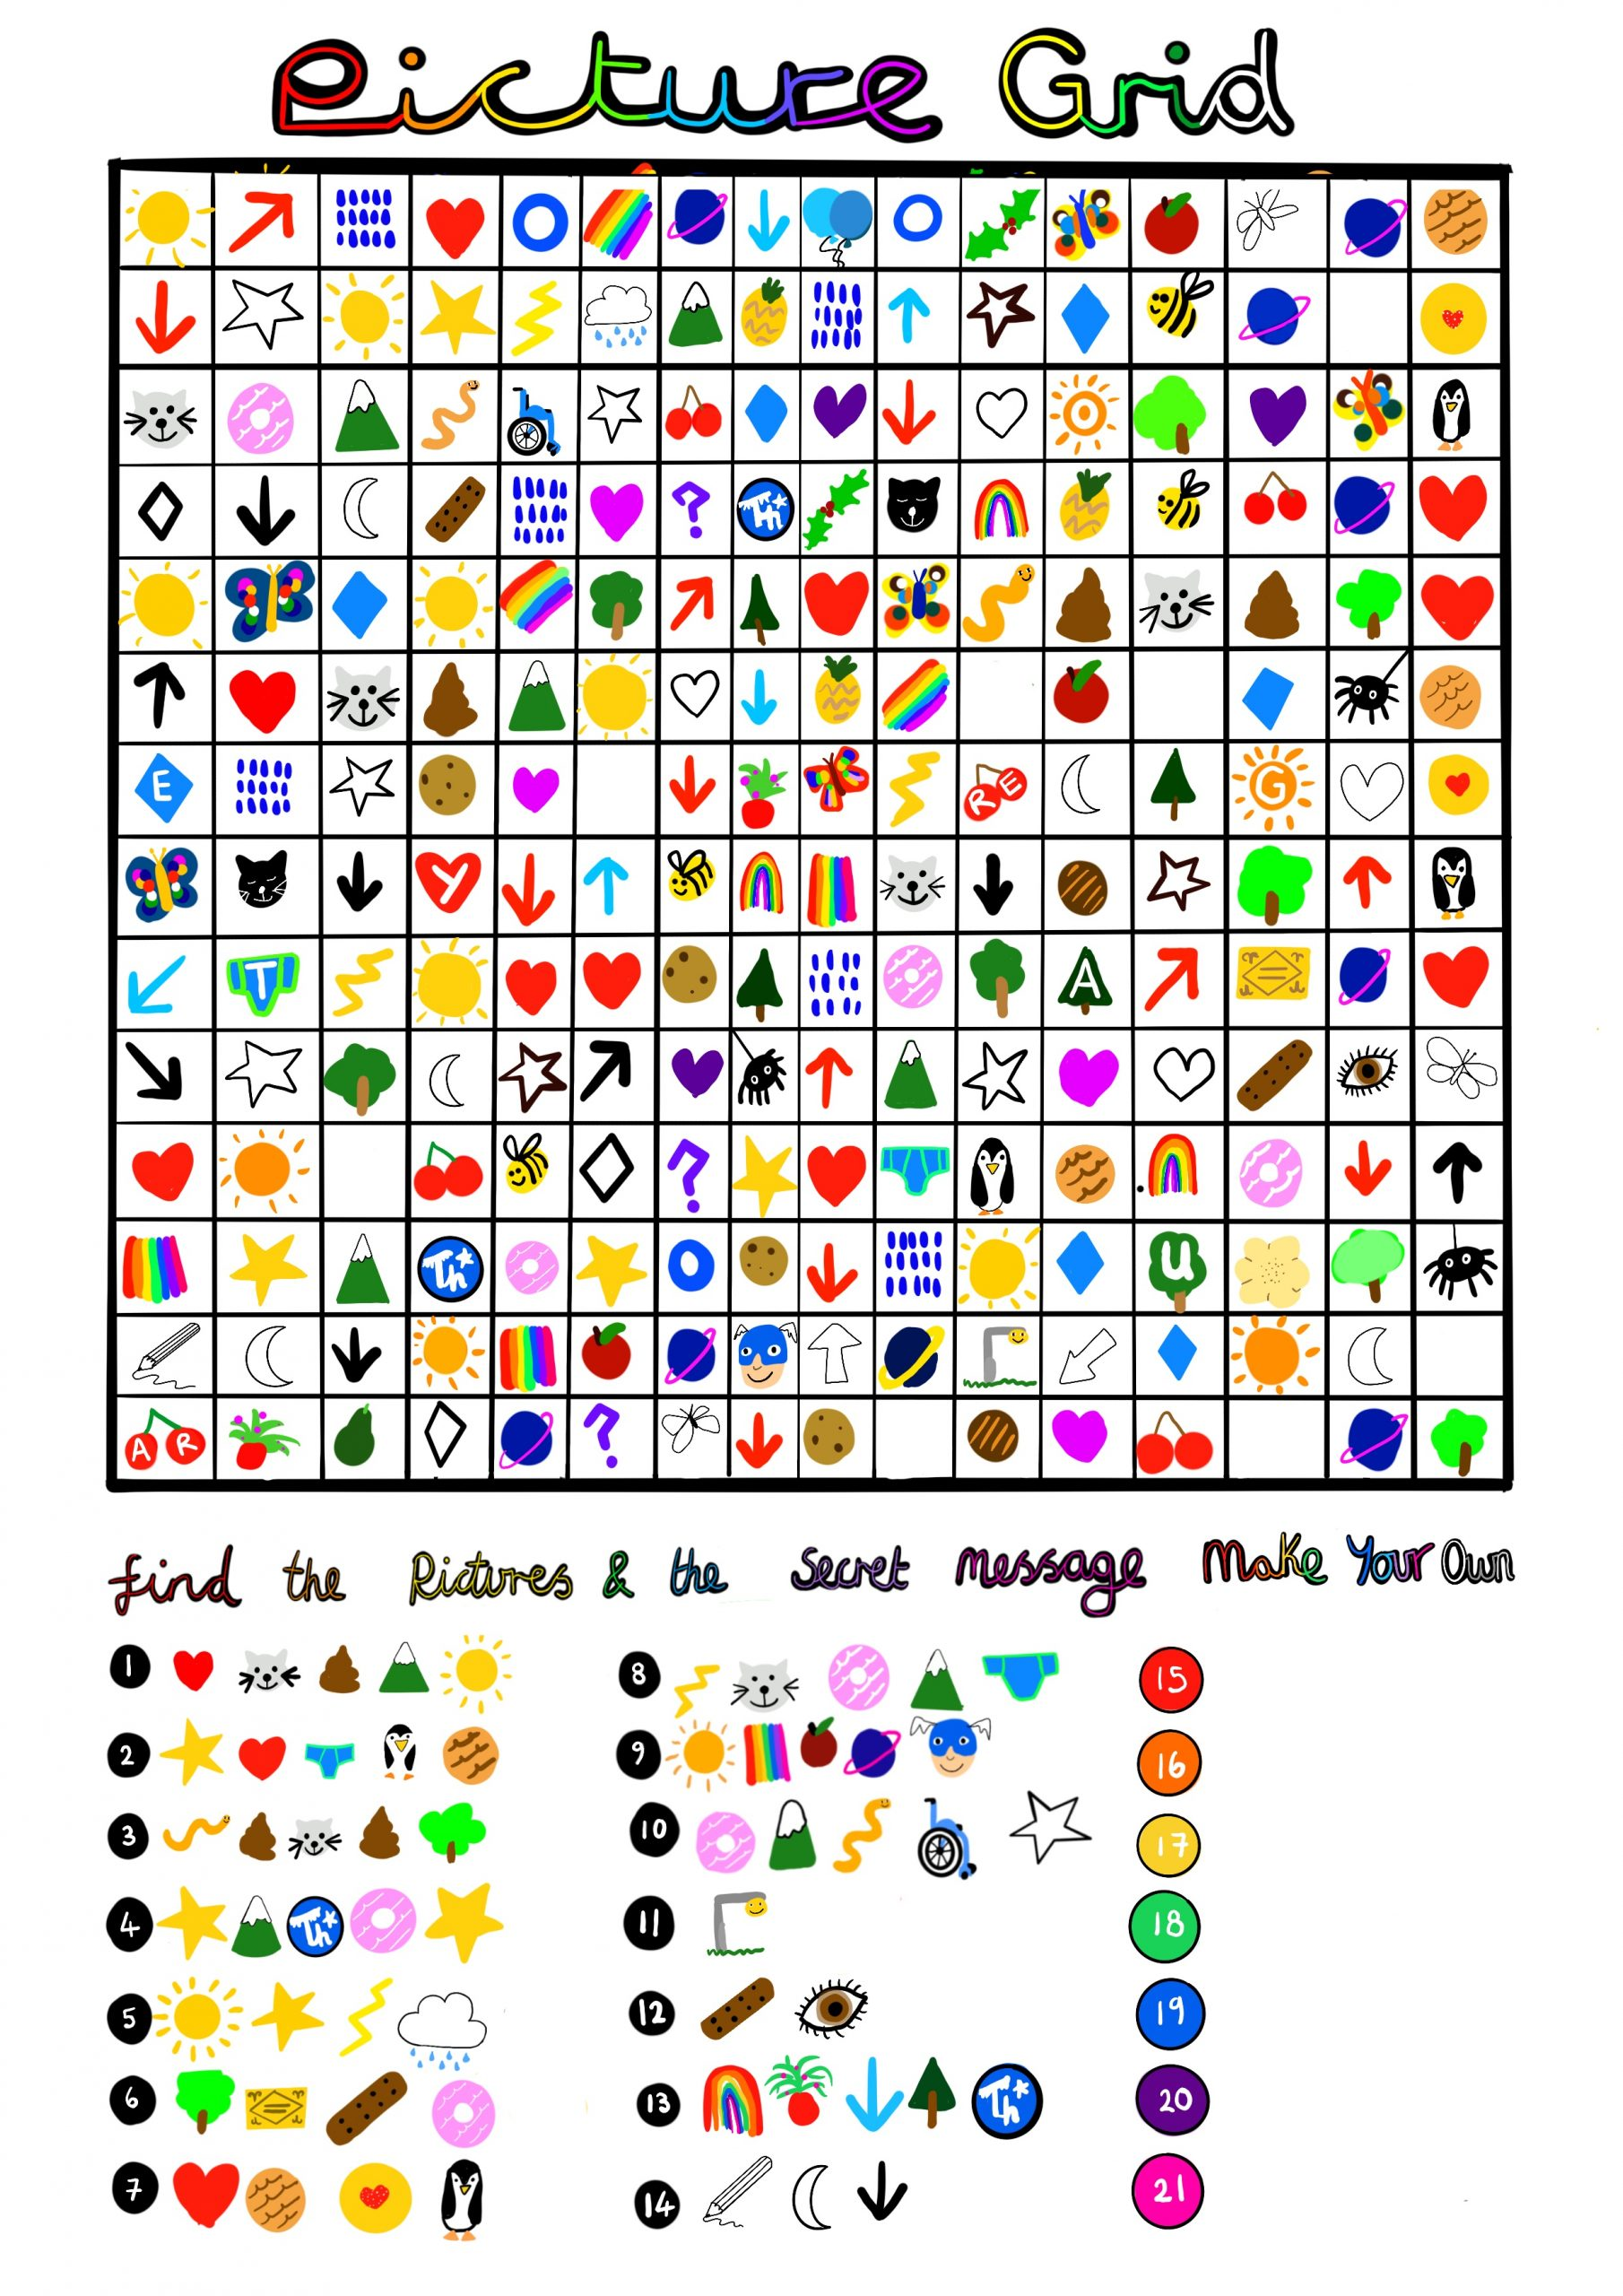 Image shows a digital drawing of Touretteshero's picture grid she made for Ruby, Leo and Laura. It is a colourful 16 square x 14 square grid containing drawings in every square such as a mountain, a snake, a wheelchair, a rainbow, a lightning bolt. At the bottom is a secret message waiting to solved